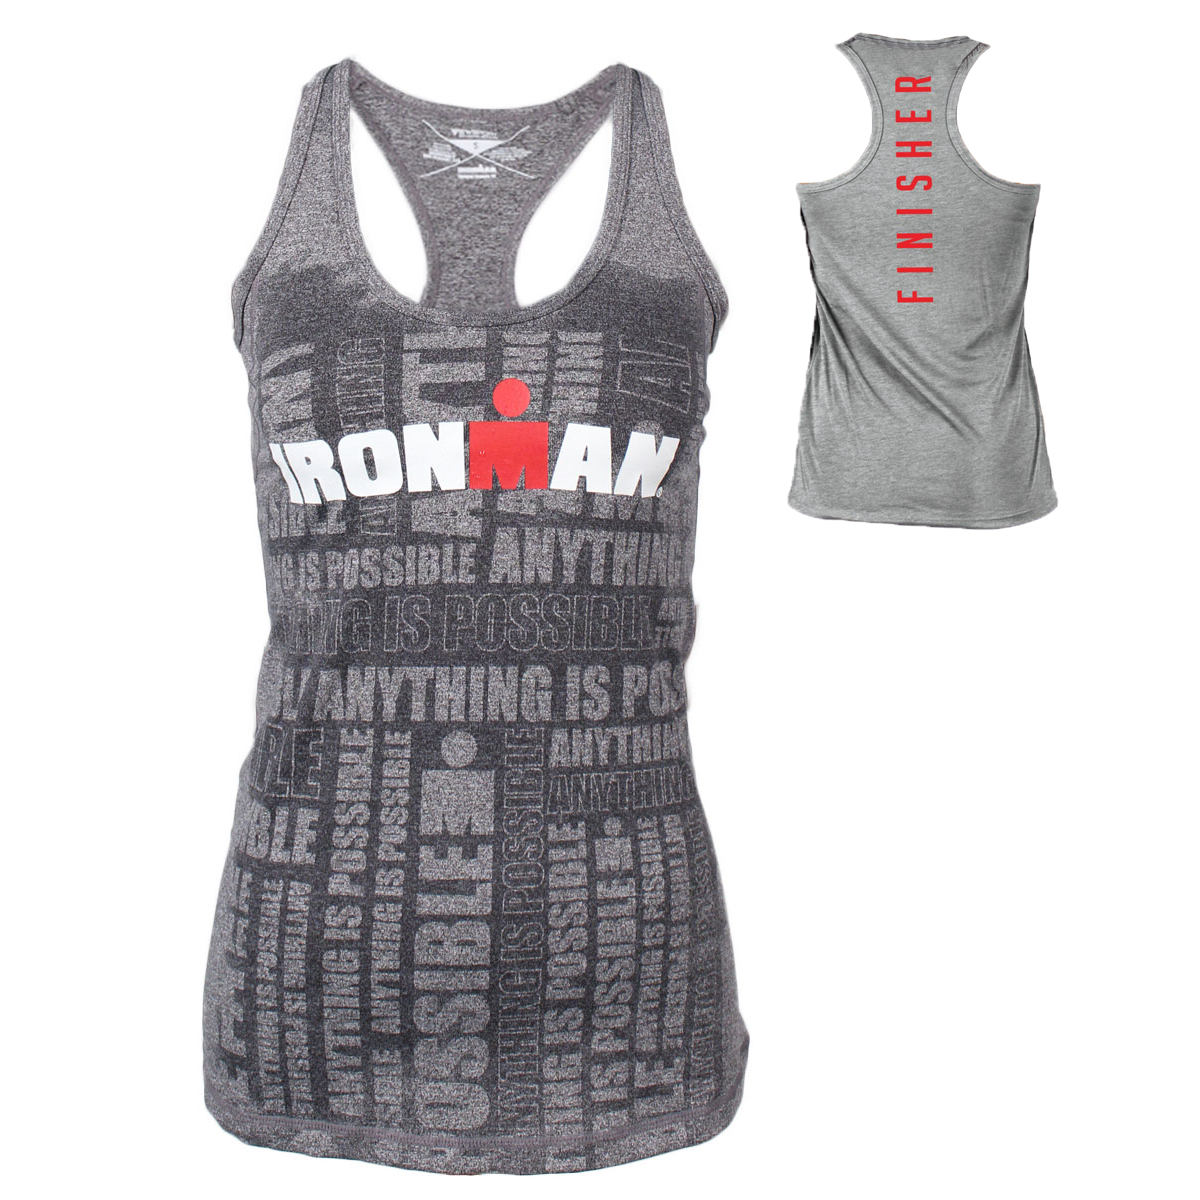 IRONMAN Women's Finisher Sweat-Activated Tank Top